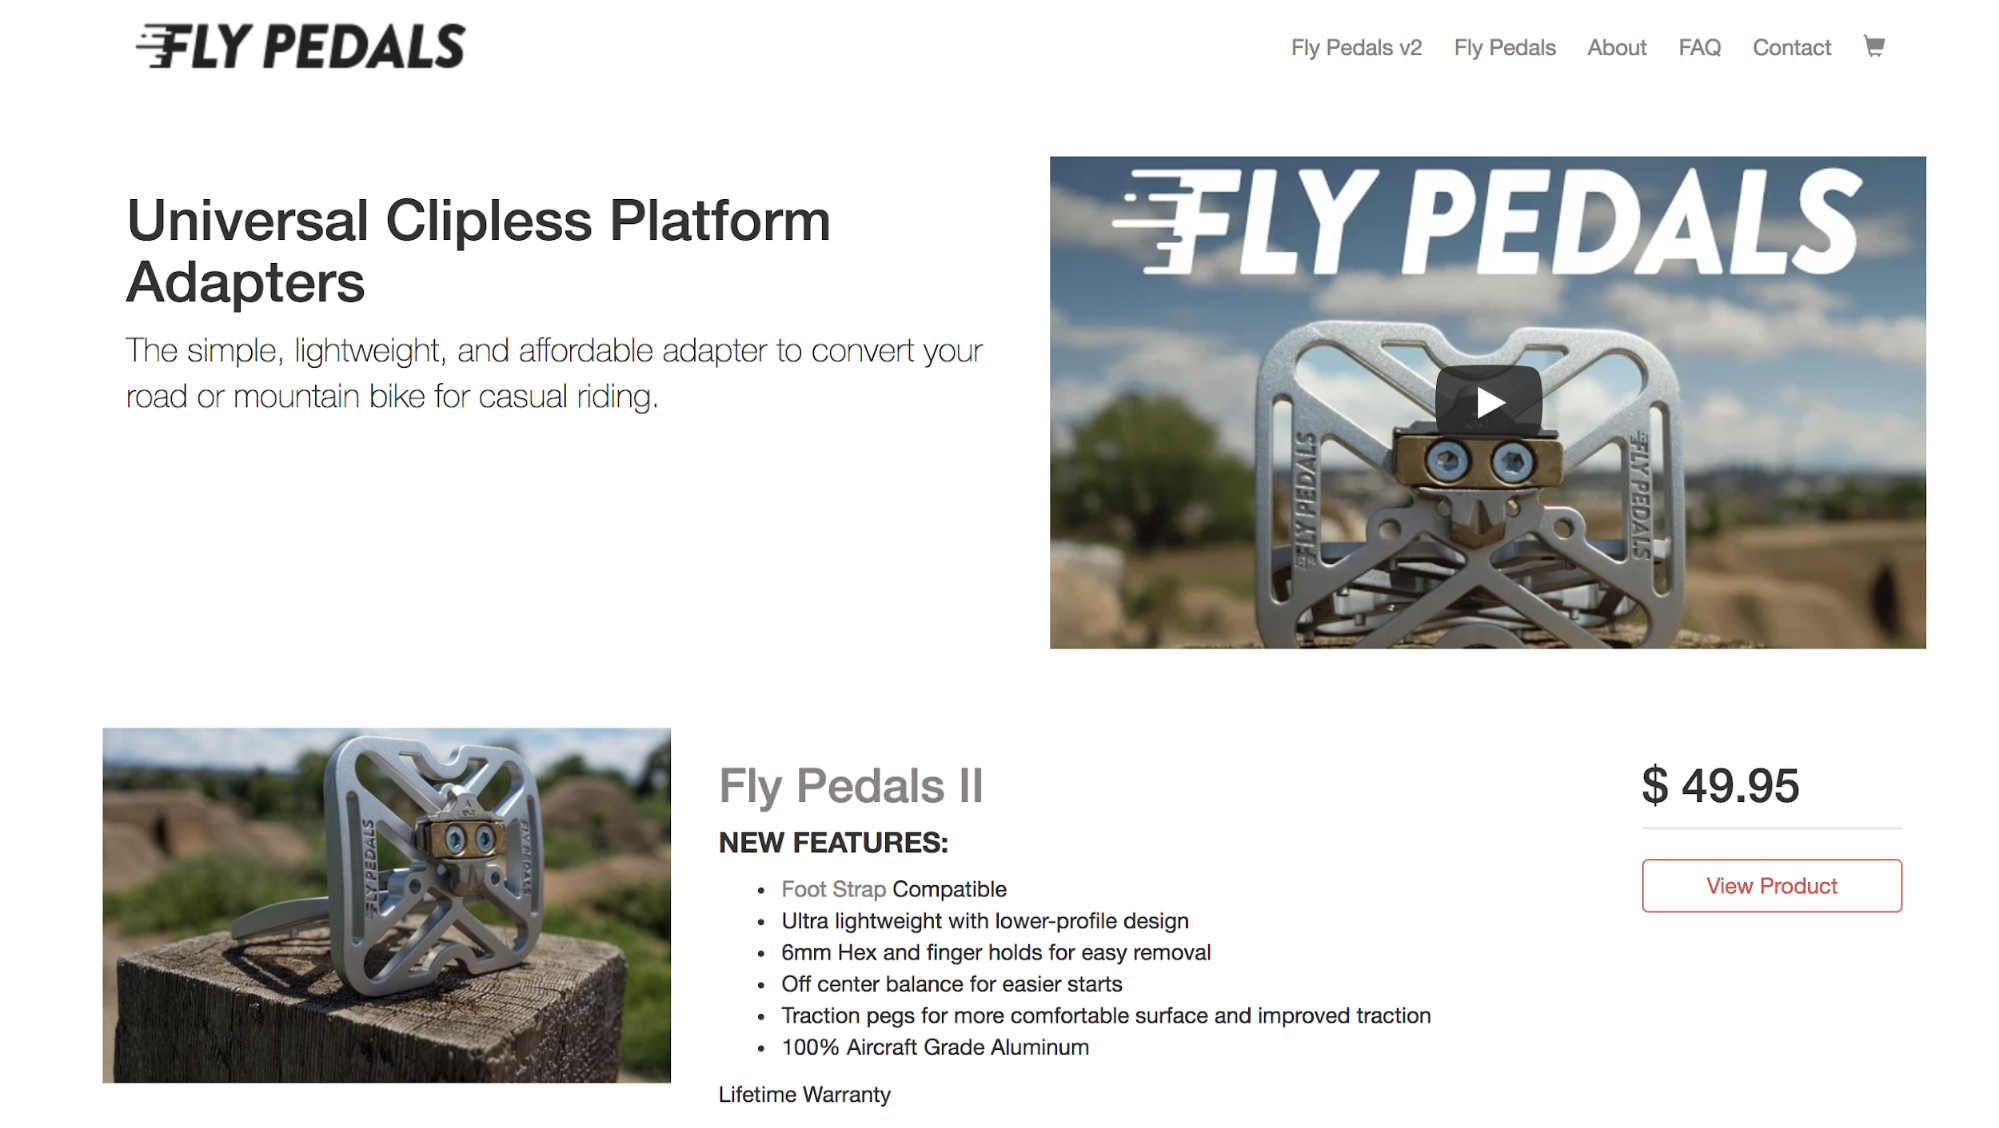 Screenshot showing fly pedals